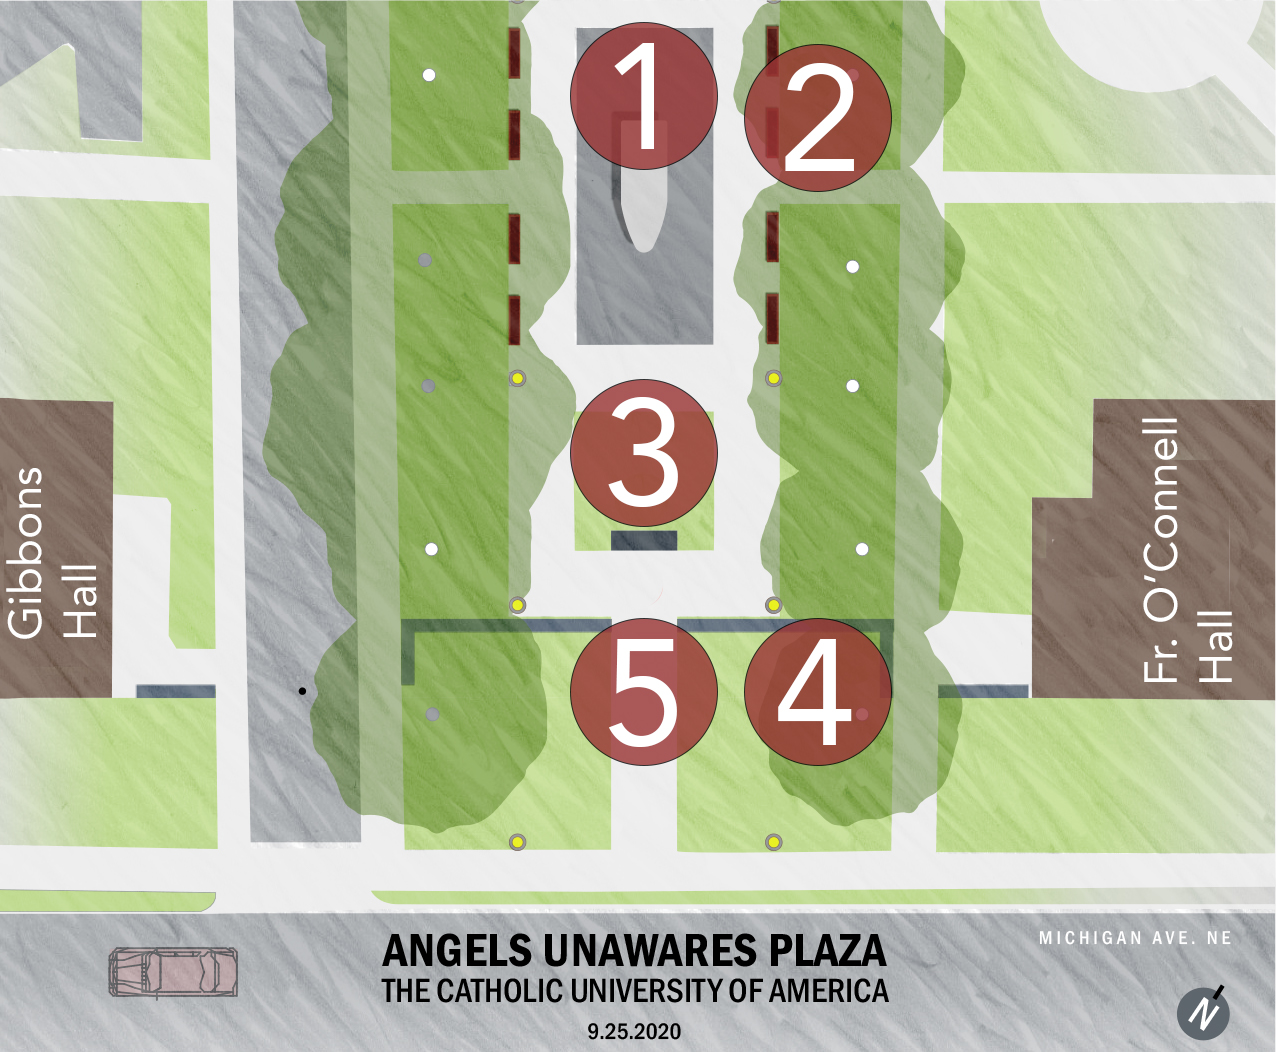 Placement of Angels Unawares on campus